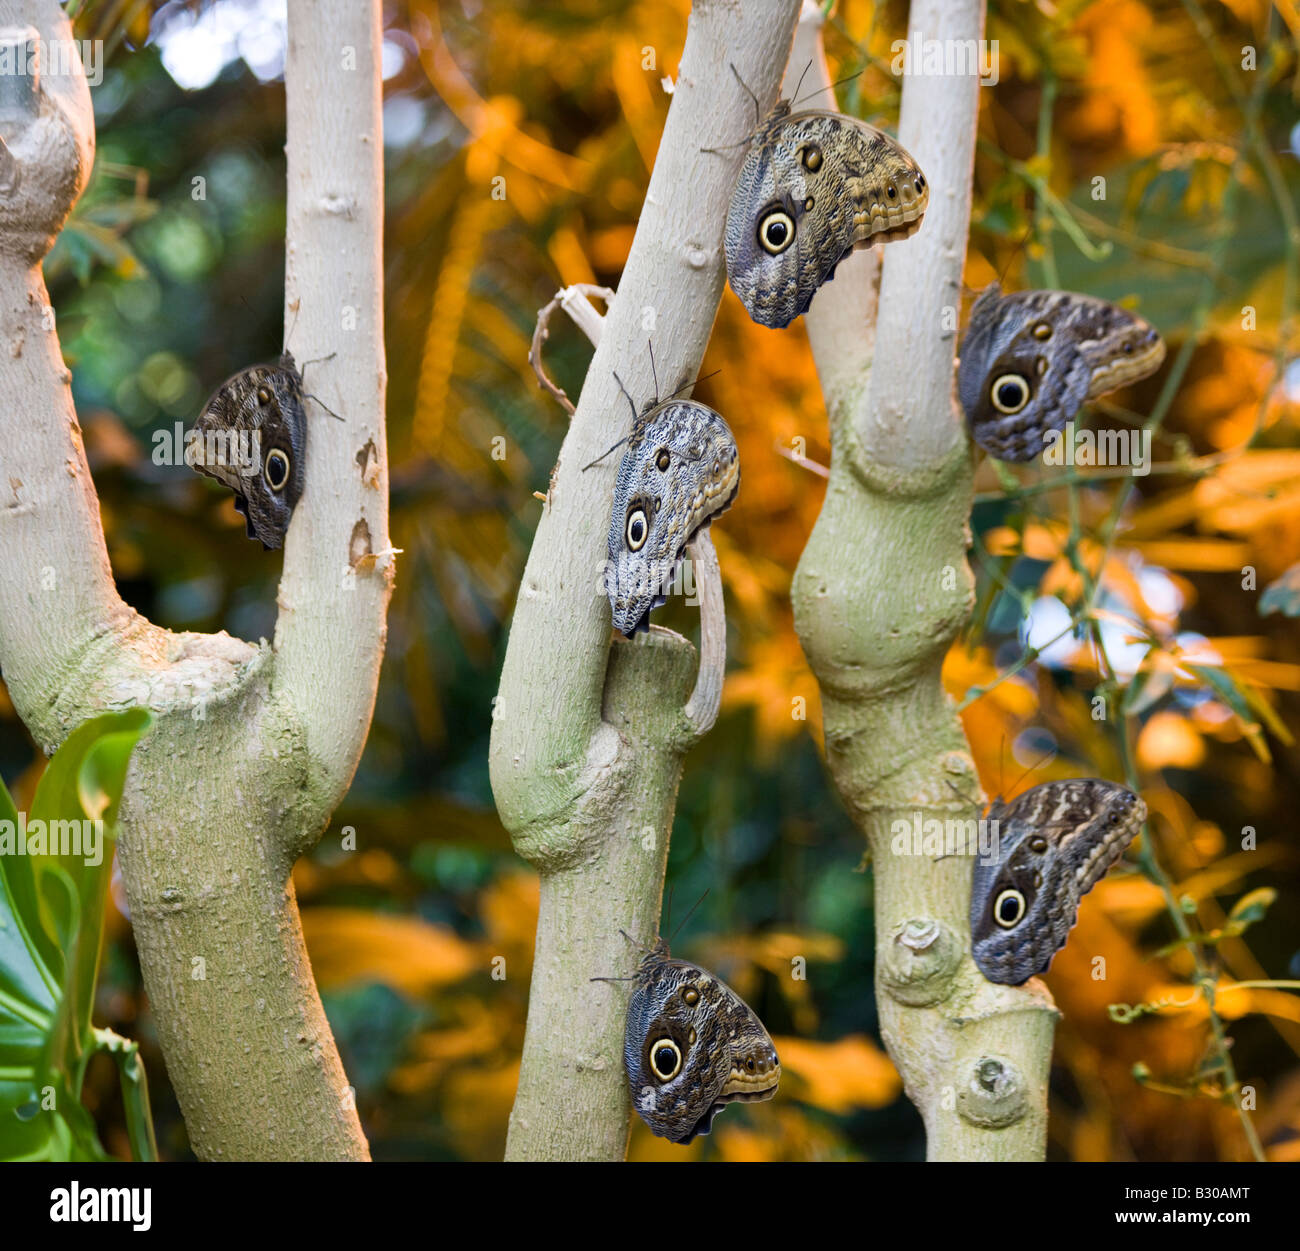 Giant Owl Butterflies, Victoria Butterfly Gardens, Brentwood Bay, British  Columbia, Canada